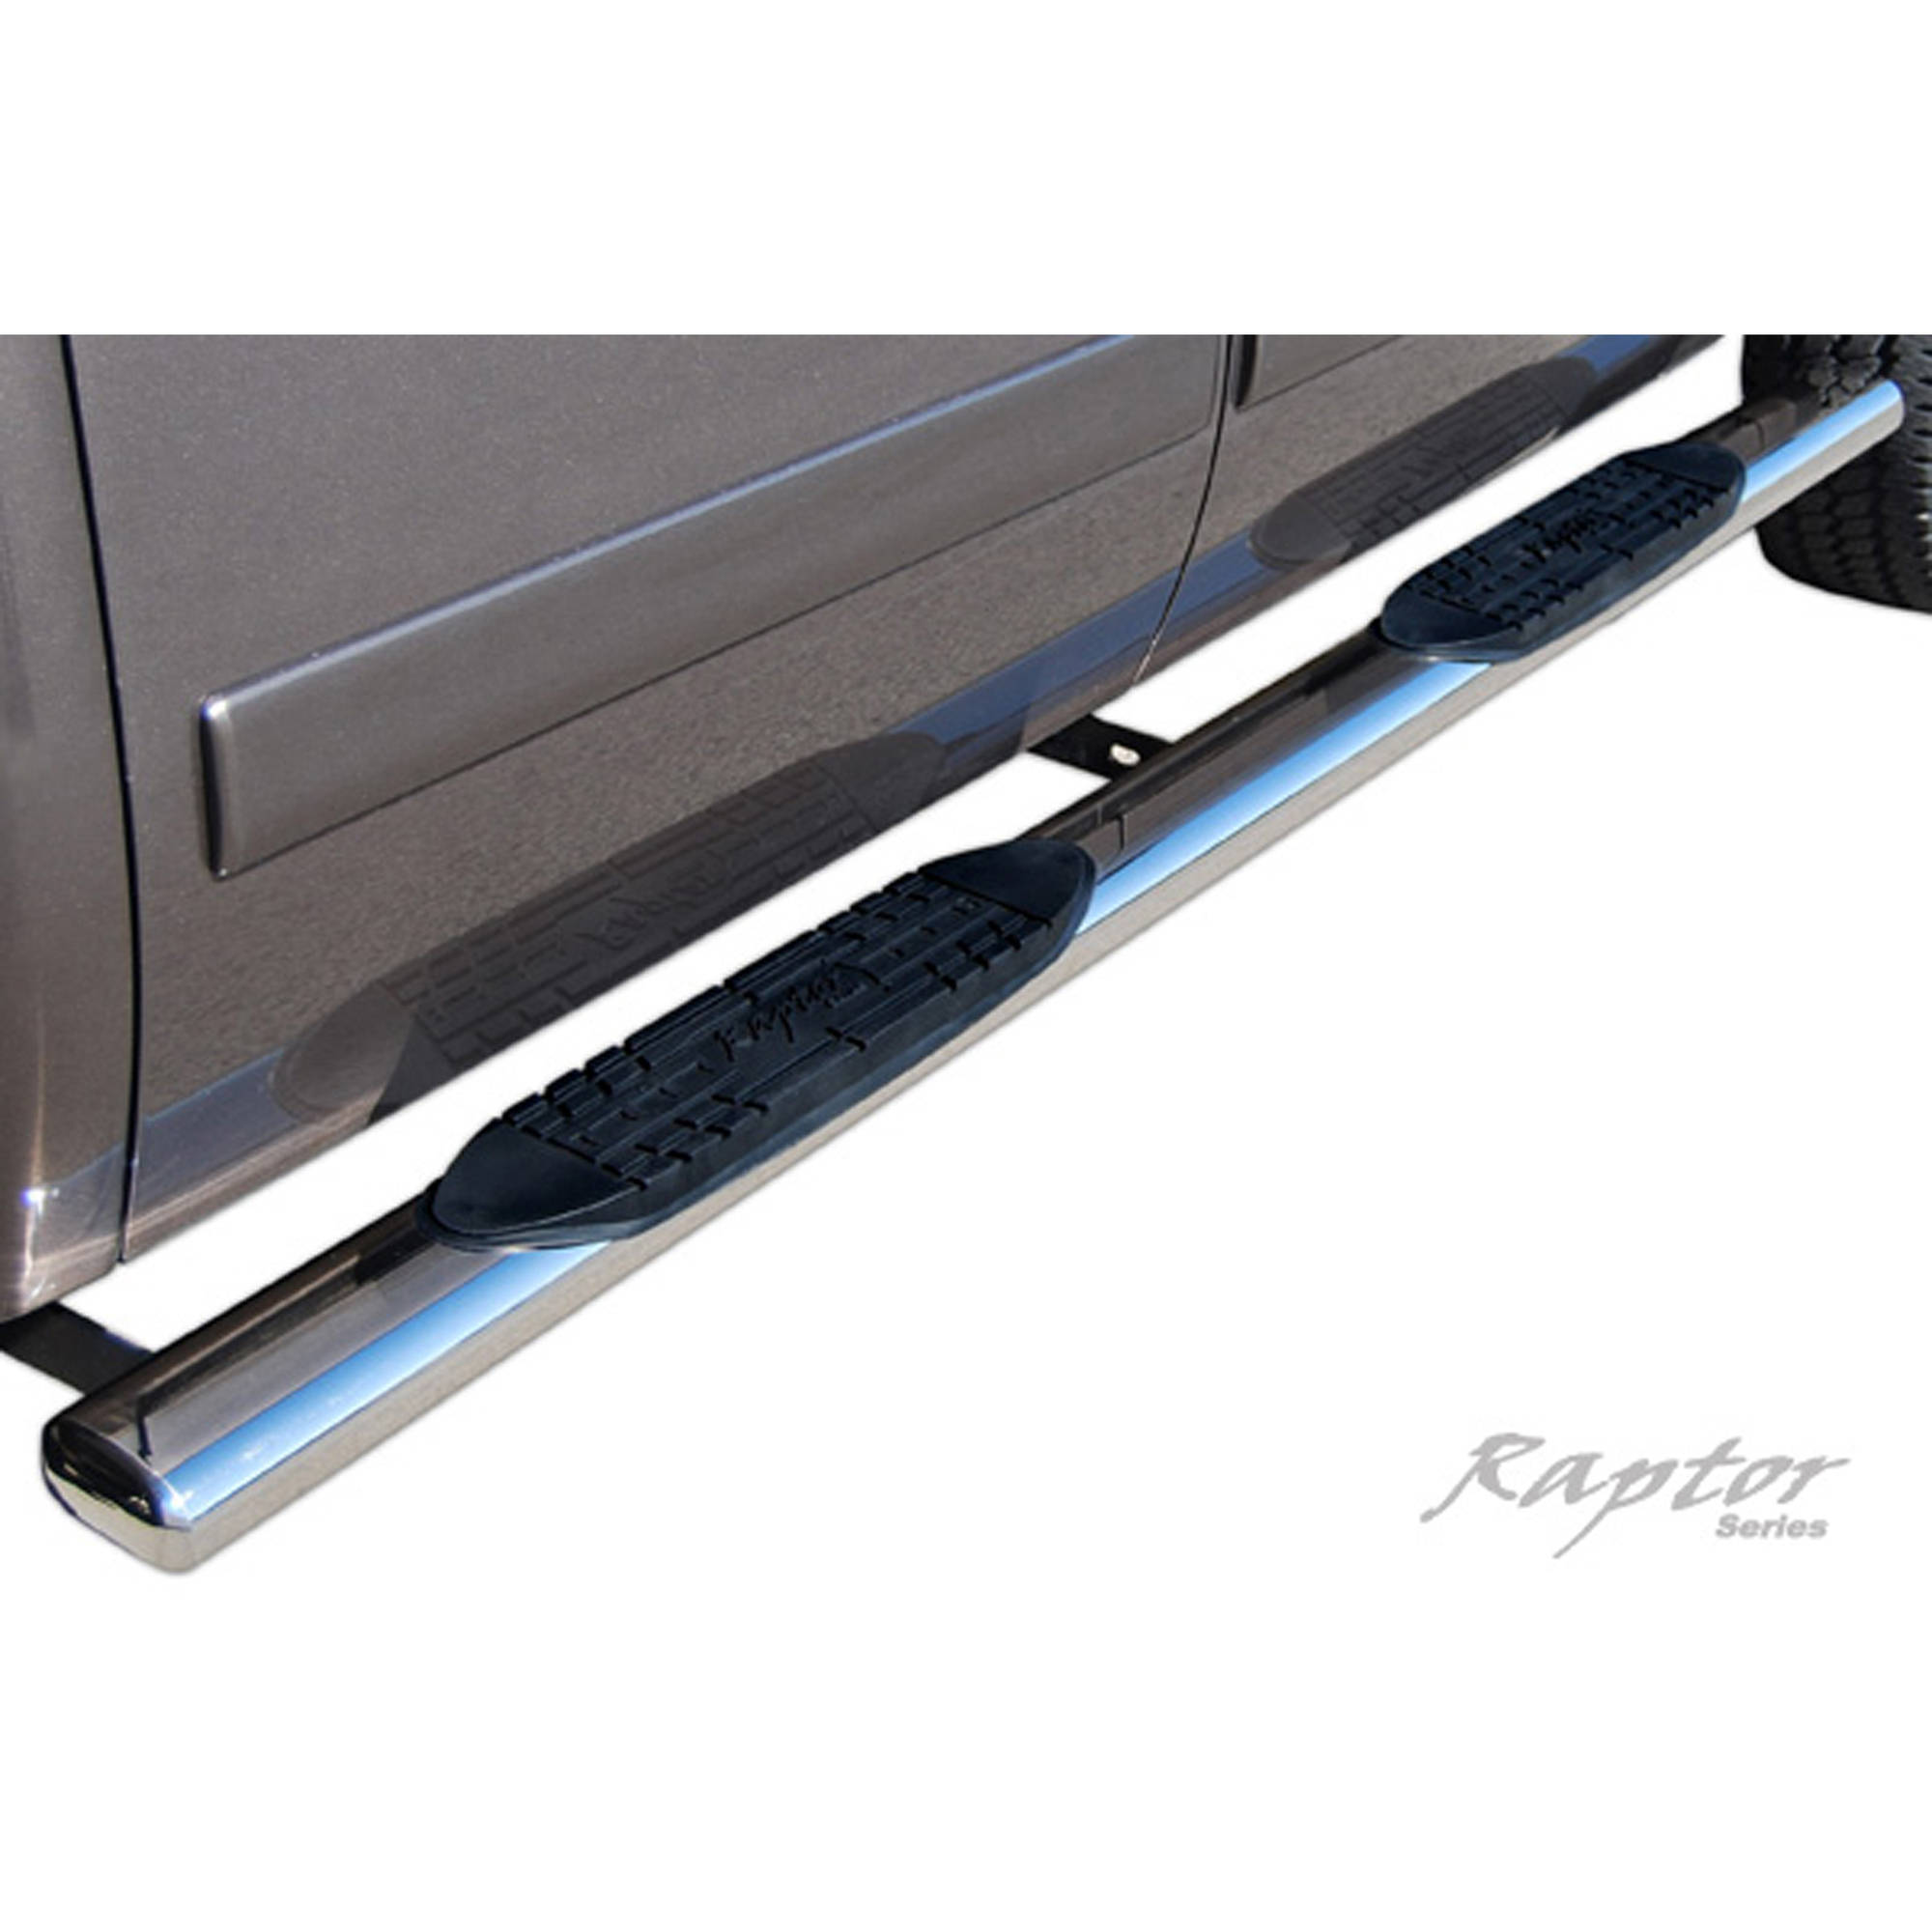 "Raptor Series 07-15 Toyota Tundra Double Cab 5"" Oval Steps, Stainless Steel"